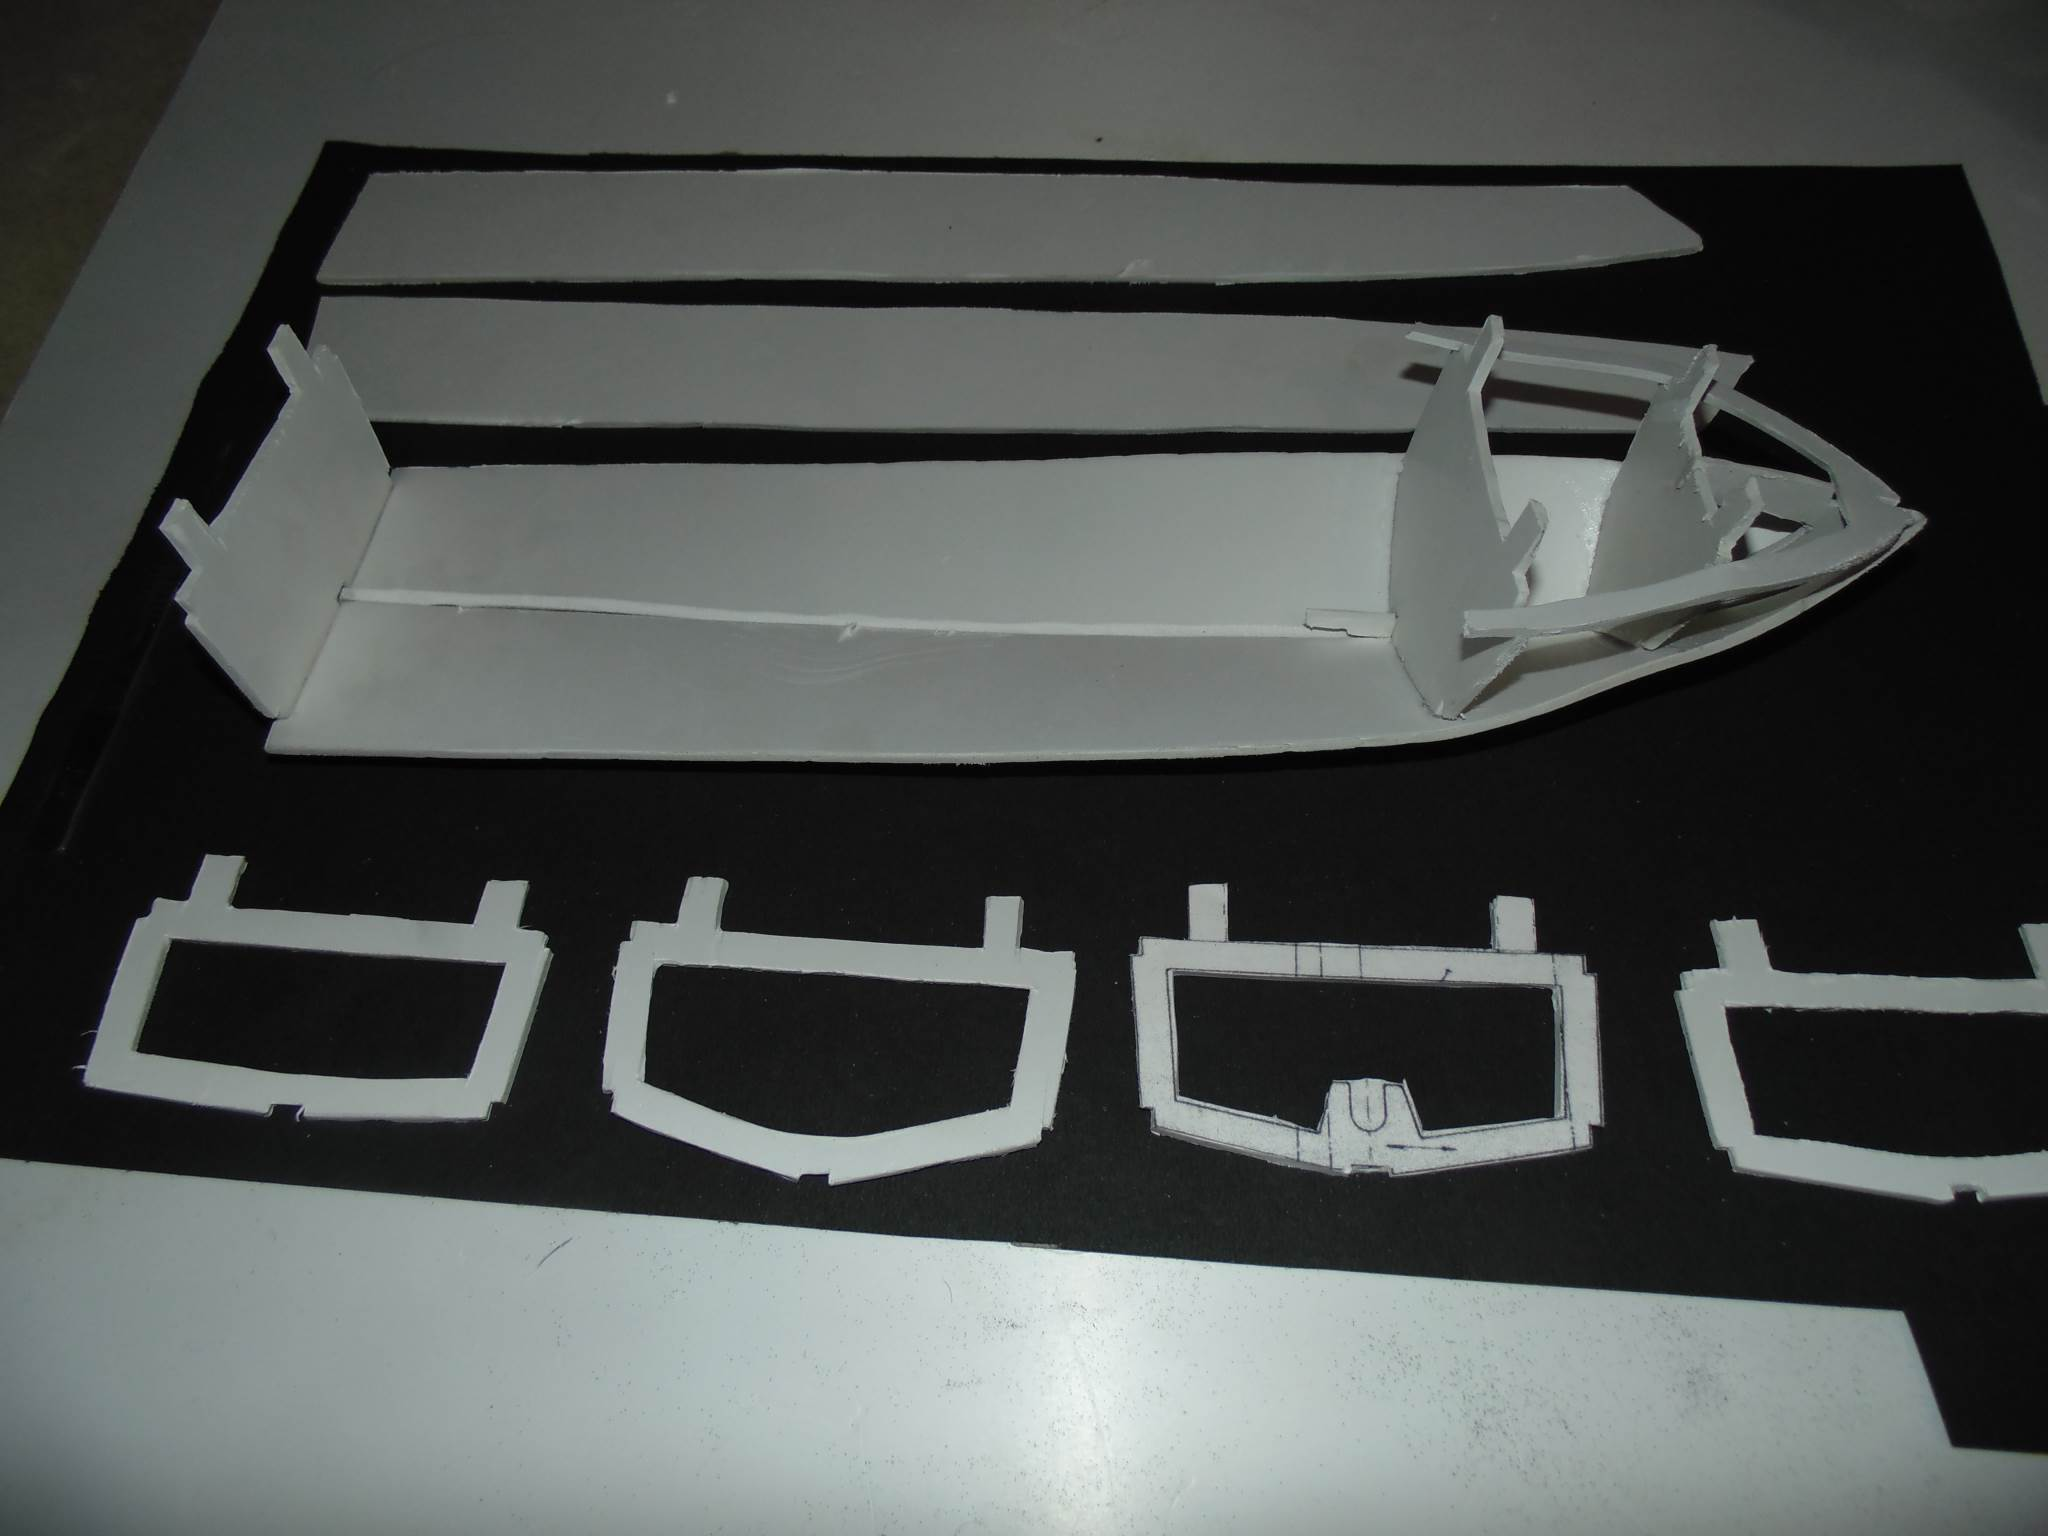 Joining Parts to Make a Remote Control Boat using PVC Sheet